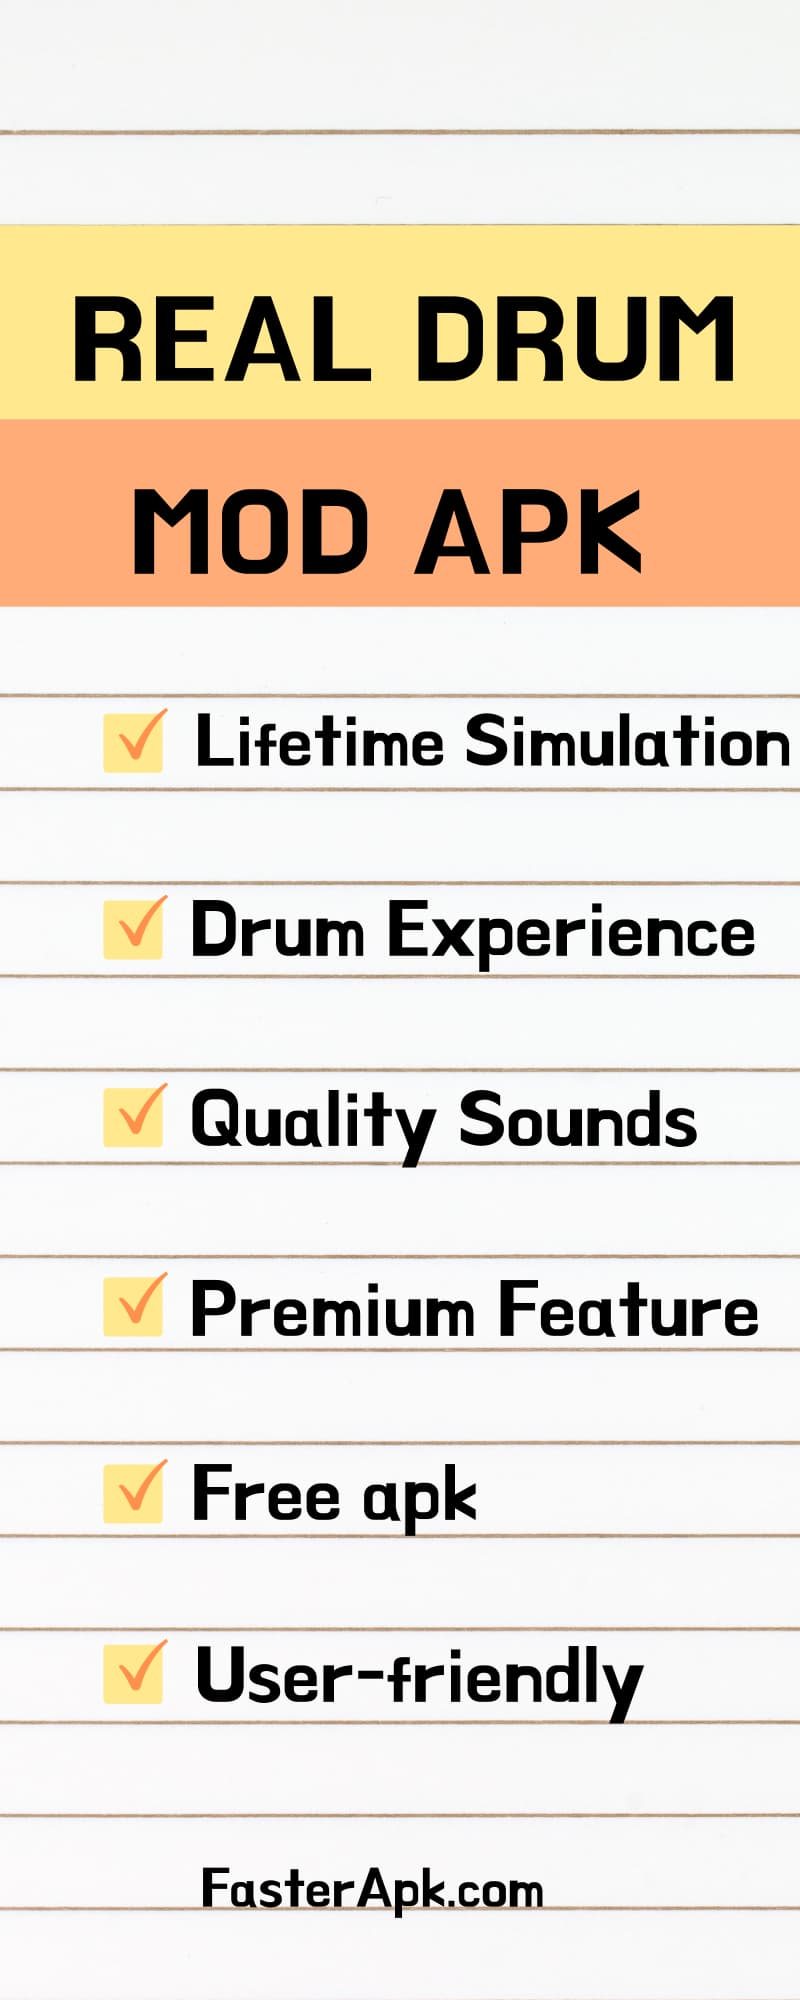 Real Drum Mod Apk Features